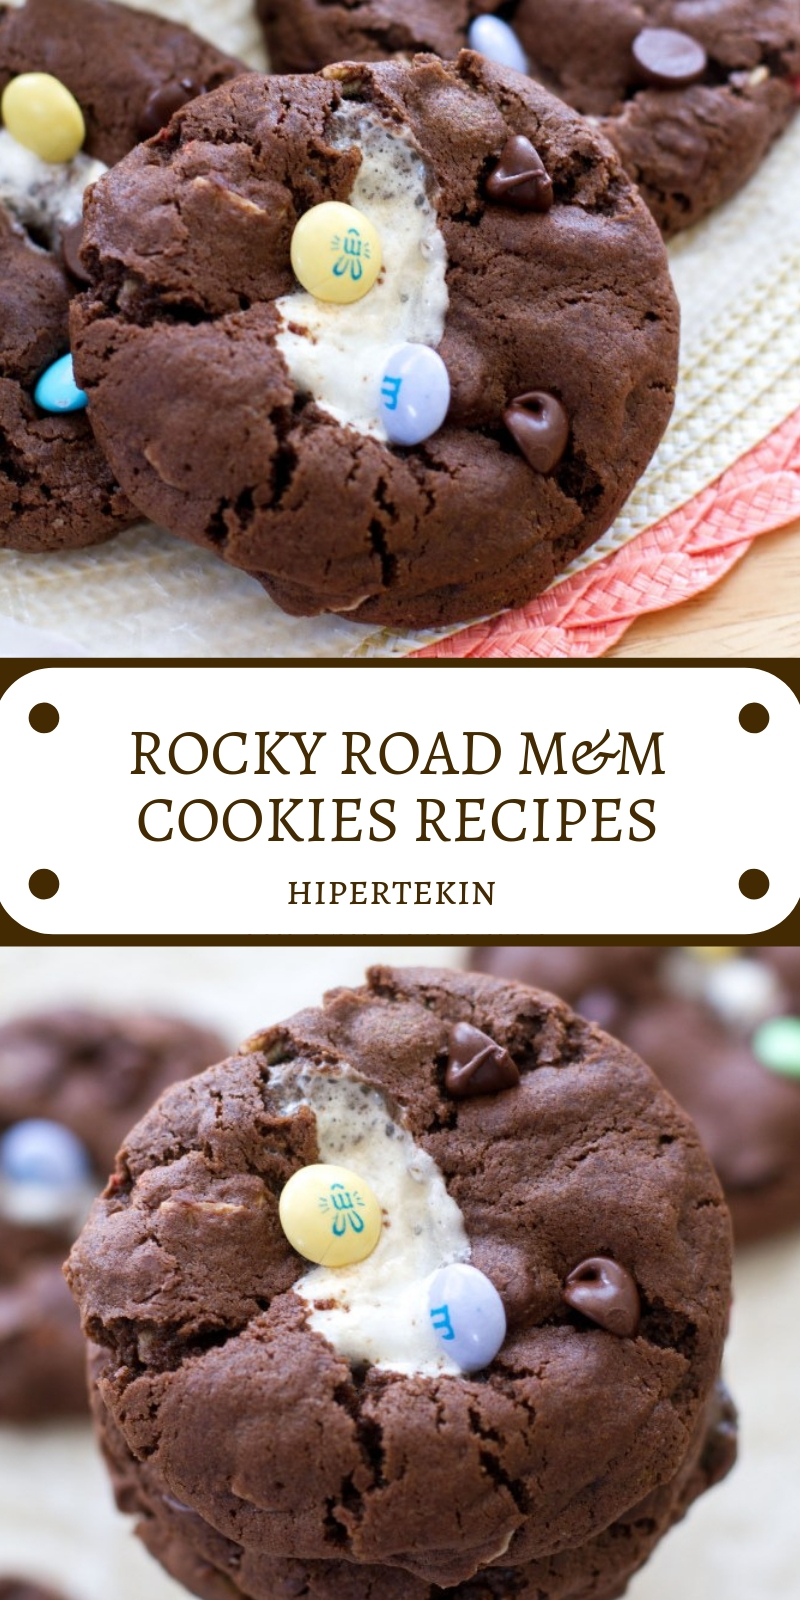 ROCKY ROAD M&M COOKIES RECIPES